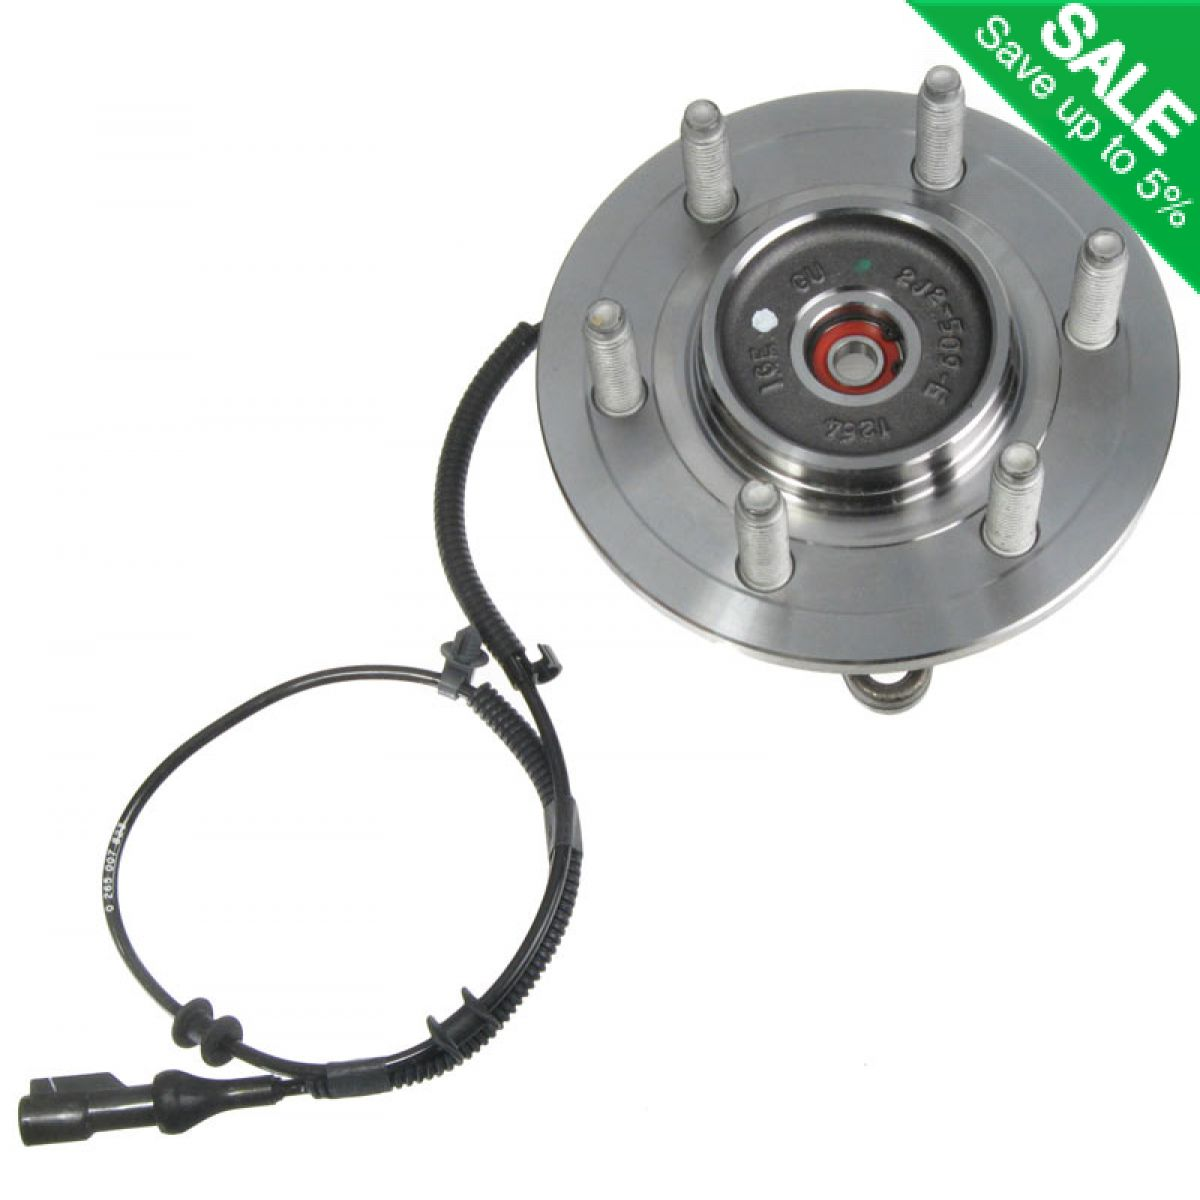 Motorcraft Hub30 Front Wheel Hub Bearing For 05 08 Ford F150 Truck Ranger 4x4 Locking Troubleshooting 4wd